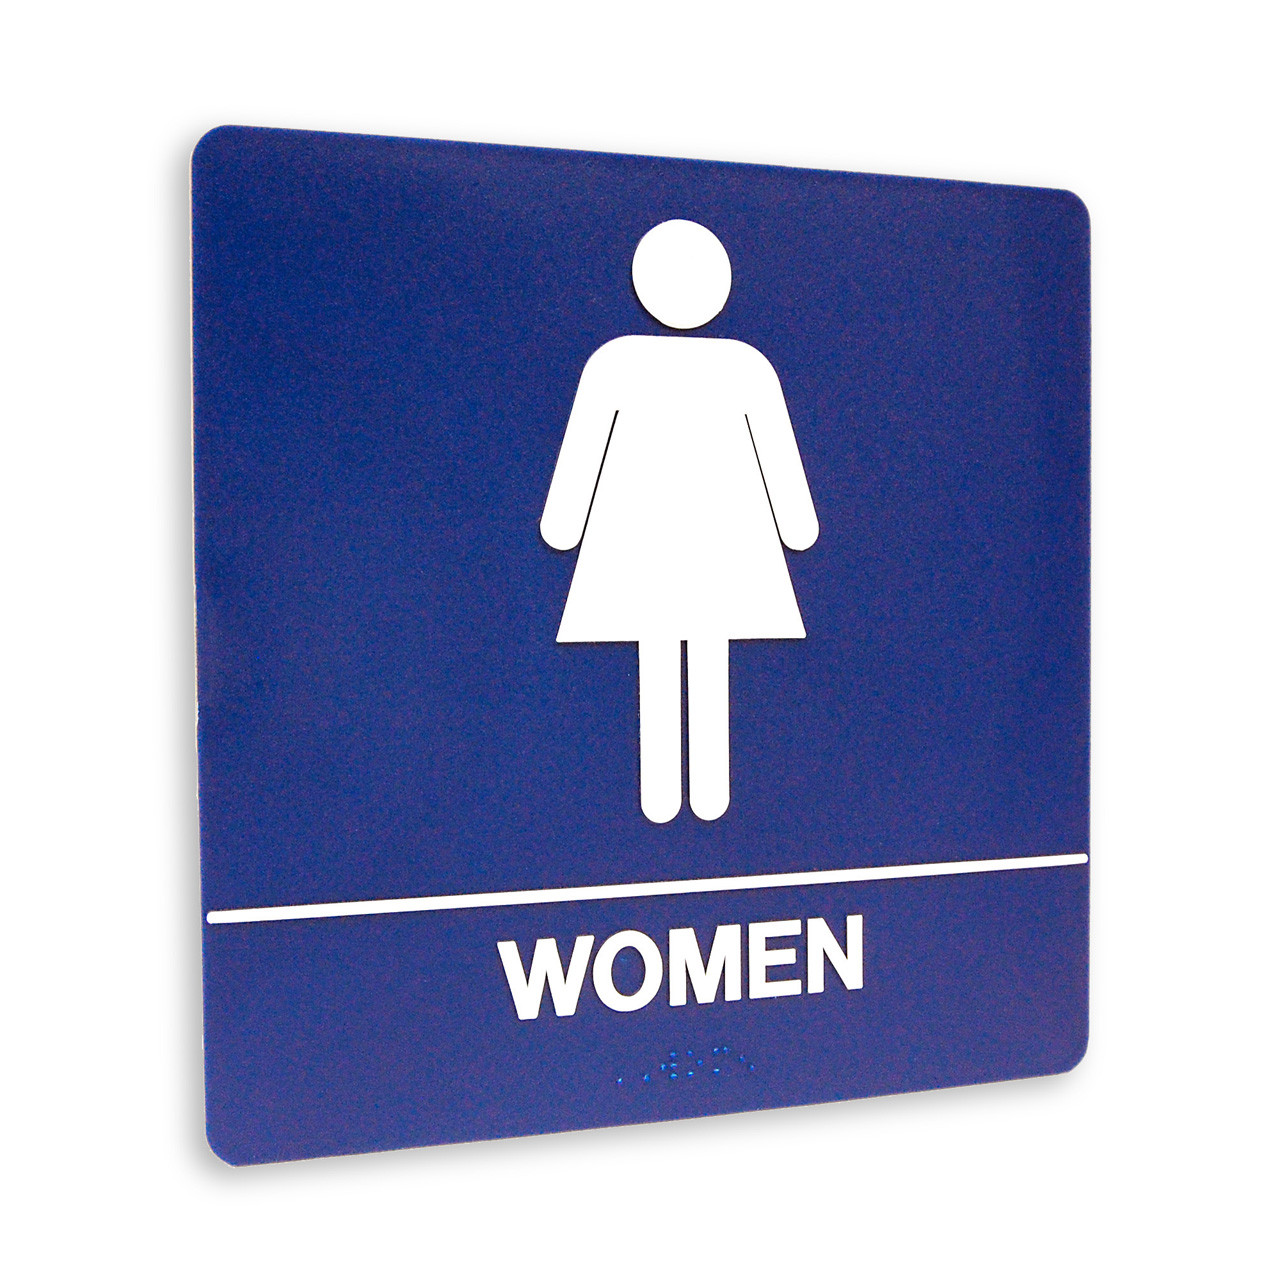 Restroom Sign WOMEN 4 Standard Colors The Kroy Sign Store